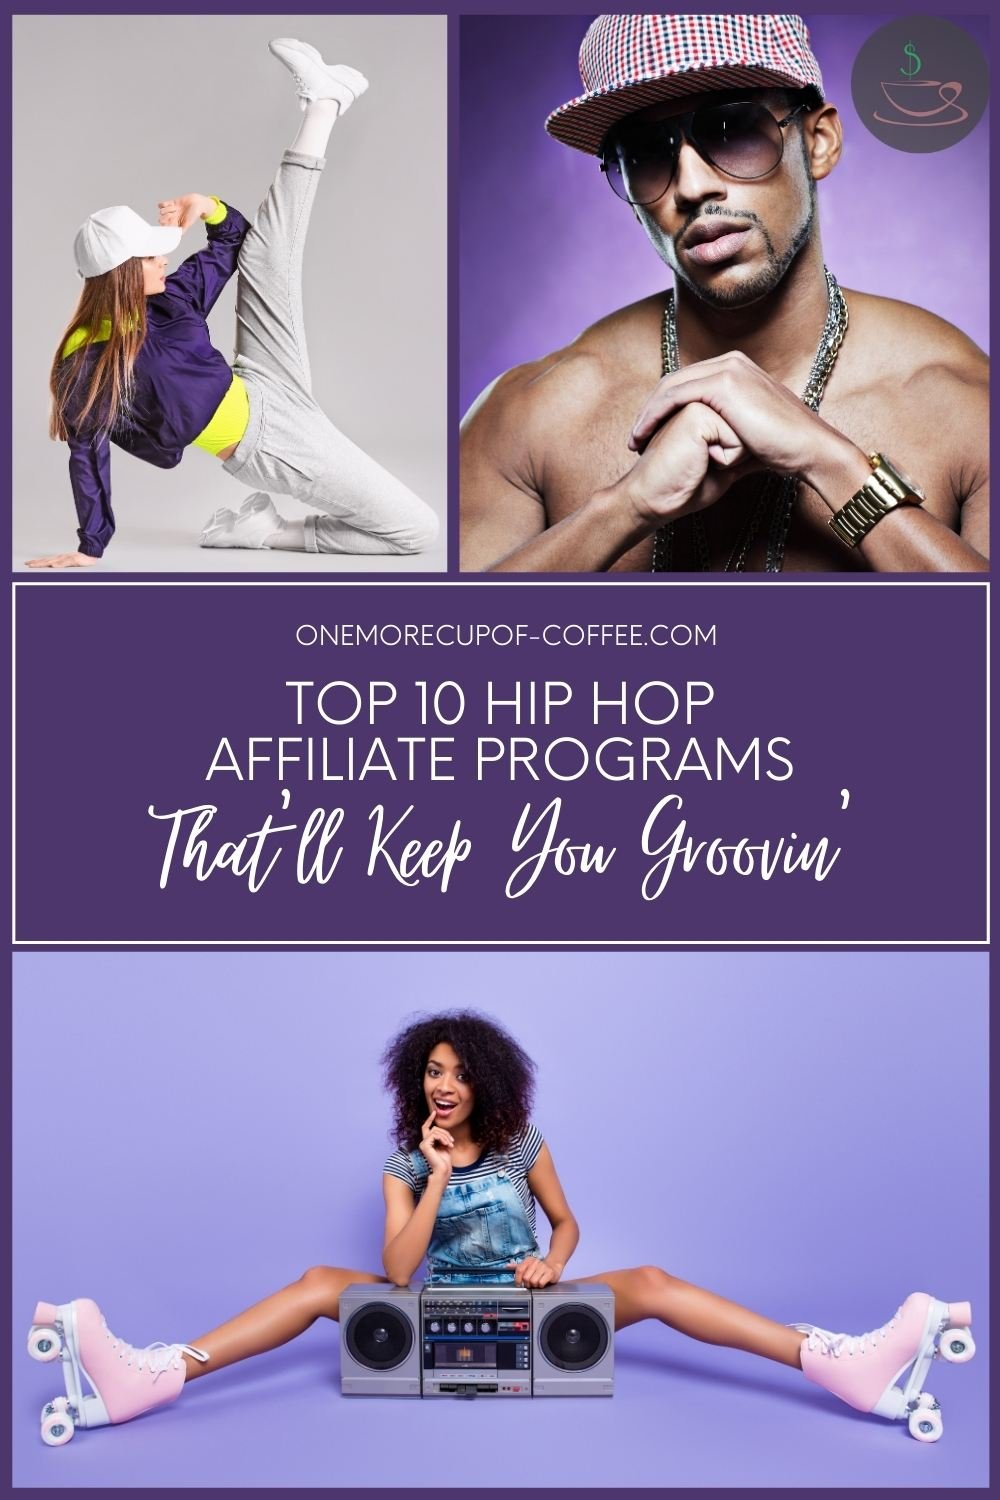 """photo collage of two female and one male hip hop artist, with text overlay """"Top 10 Hip Hop Affiliate Programs That'll Keep You Groovin"""""""